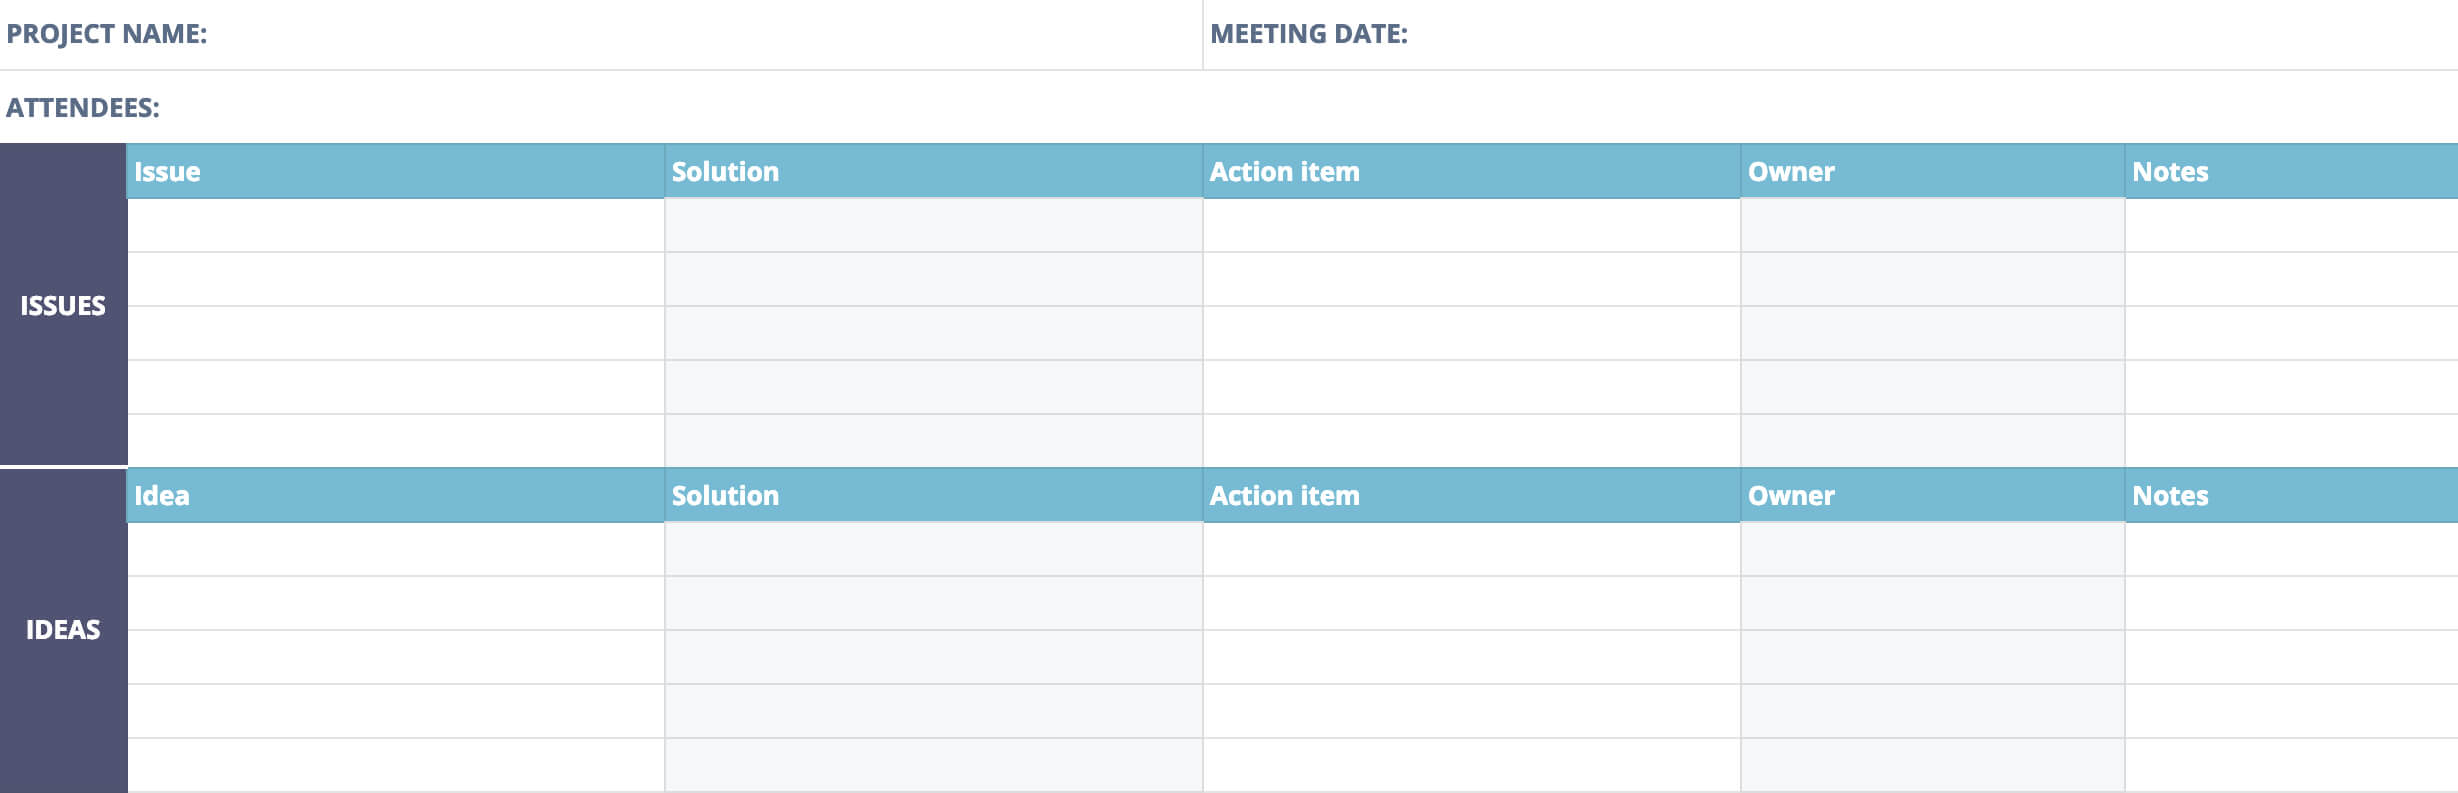 Post Mortem Meeting Template And Tips | Teamgantt For Post Event Evaluation Report Template